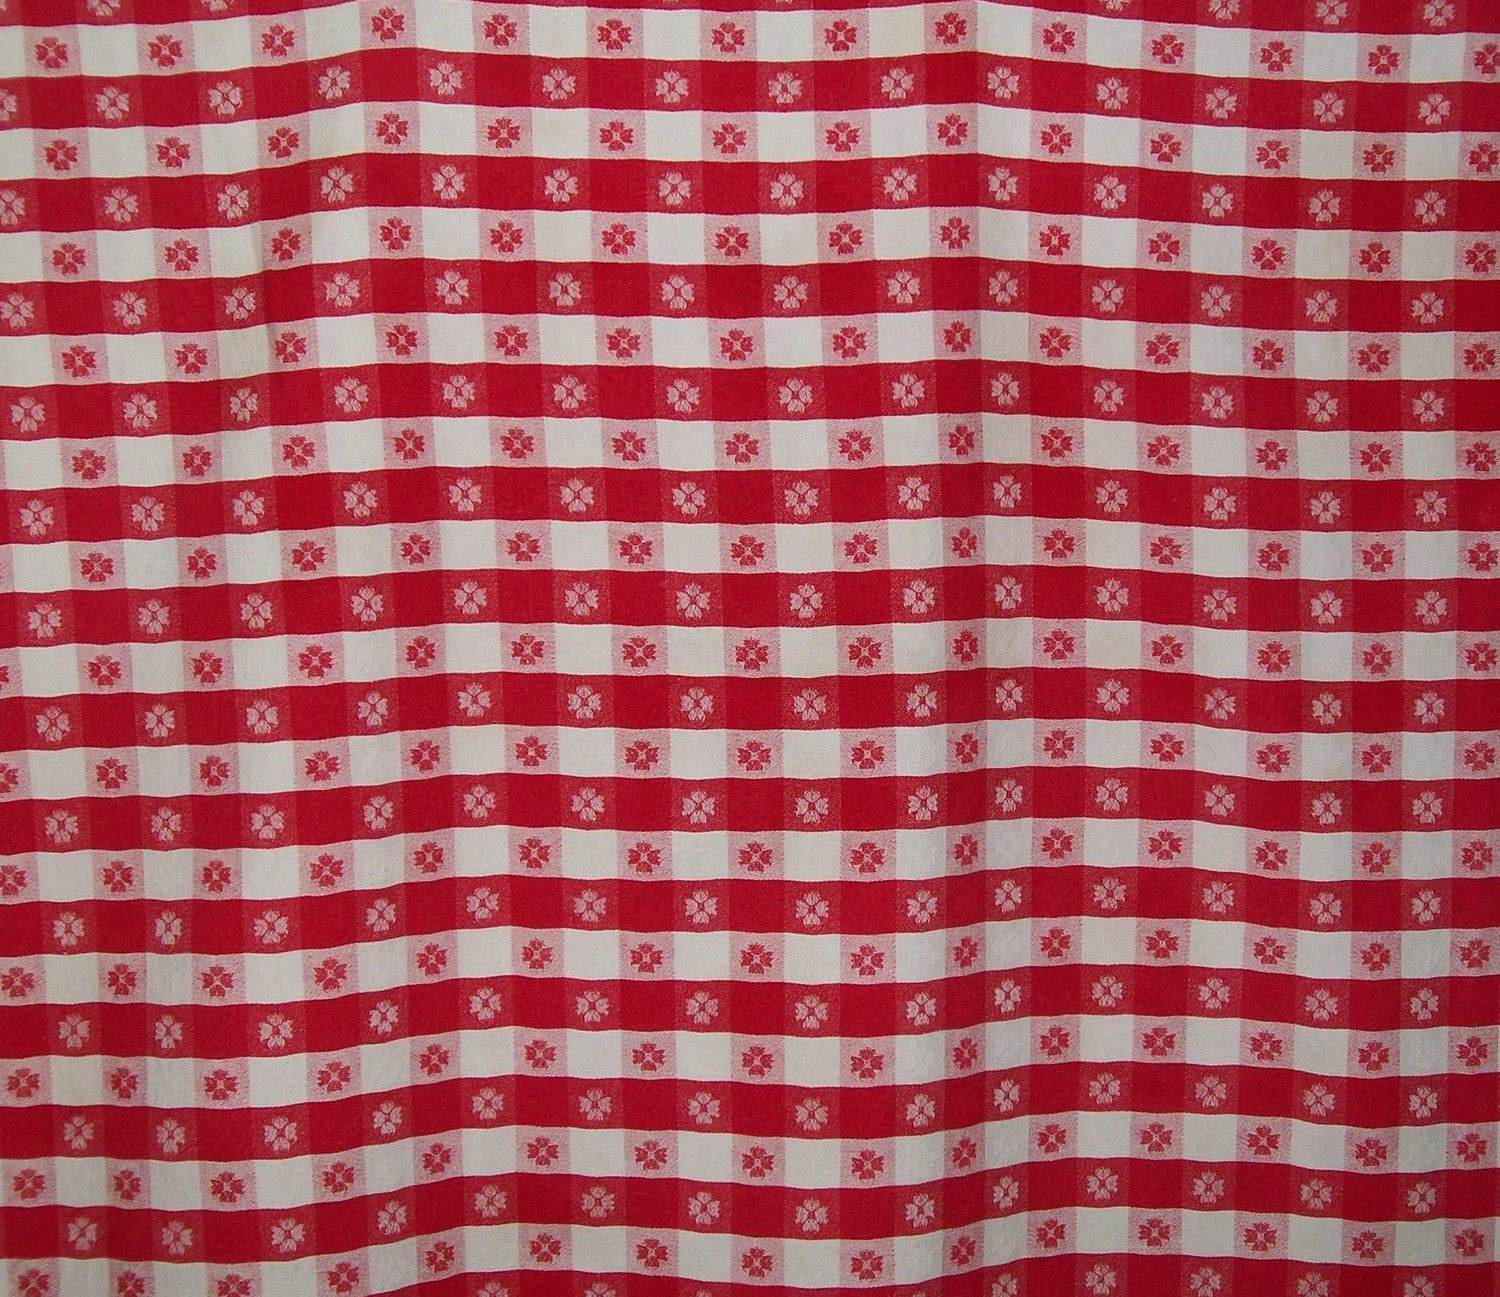 Red and White Plaid Wallpaper - WallpaperSafari